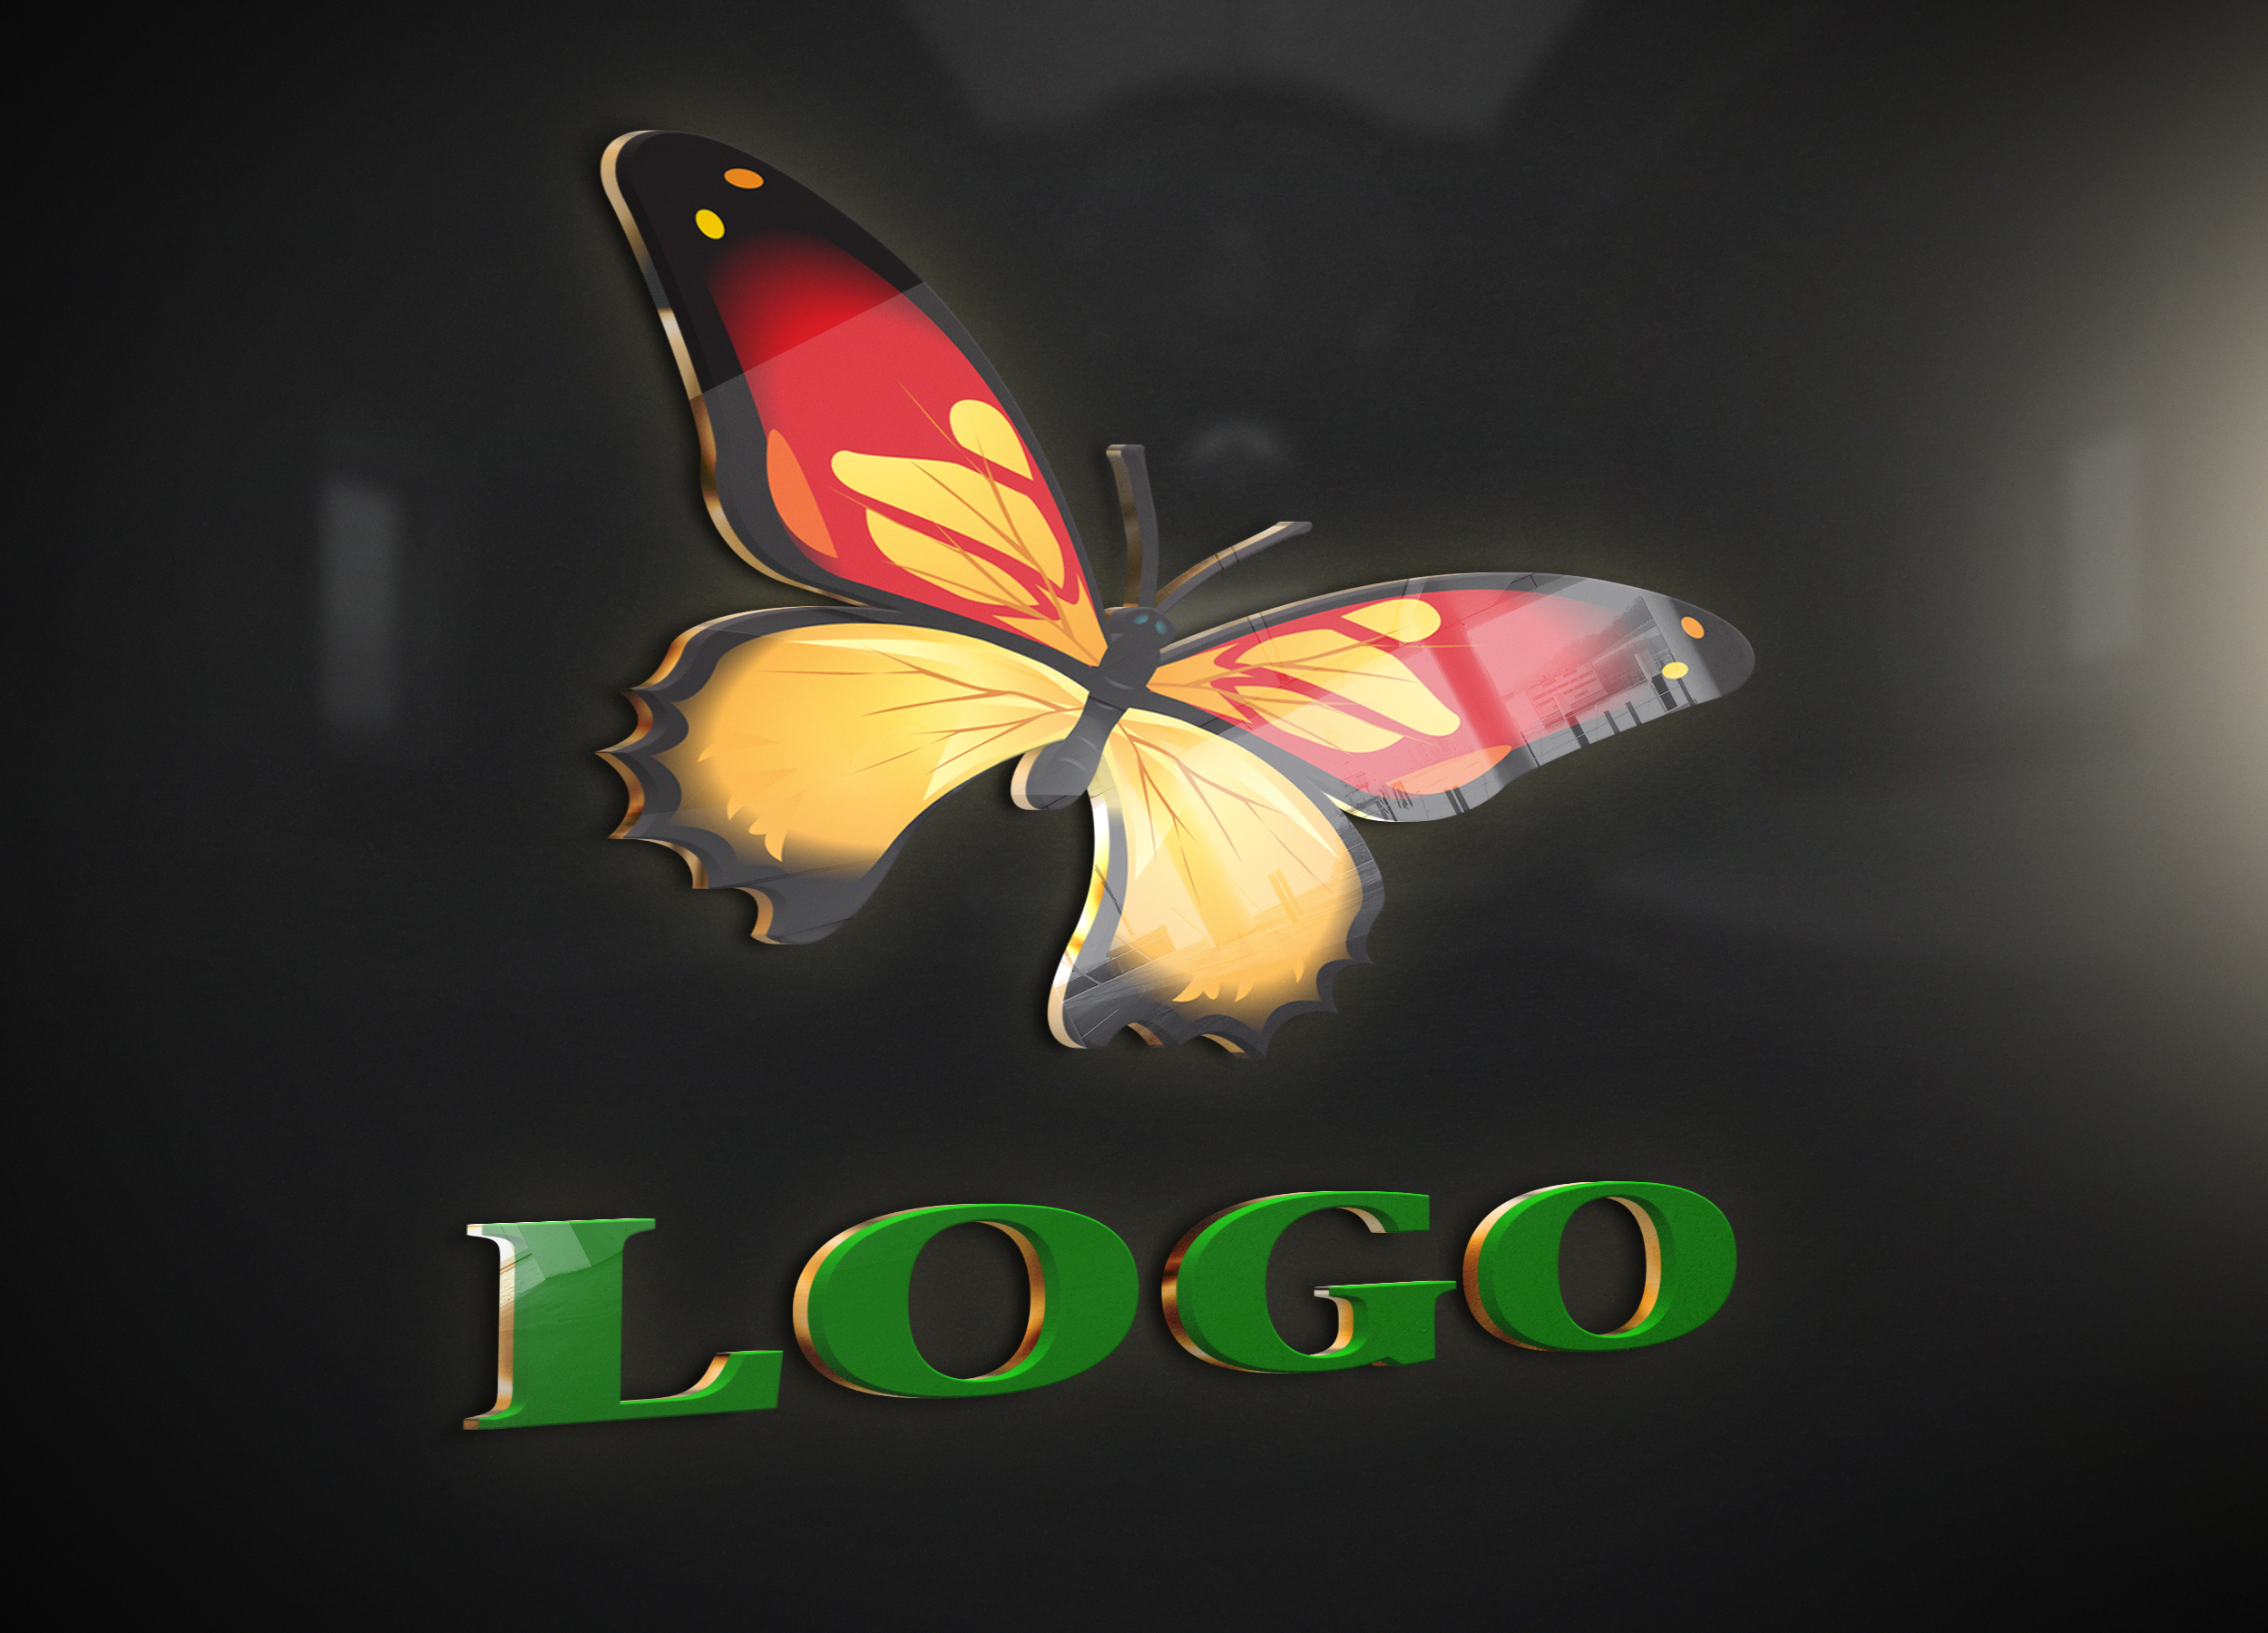 convert your transparent logo into 3D MockUp design - sample no10